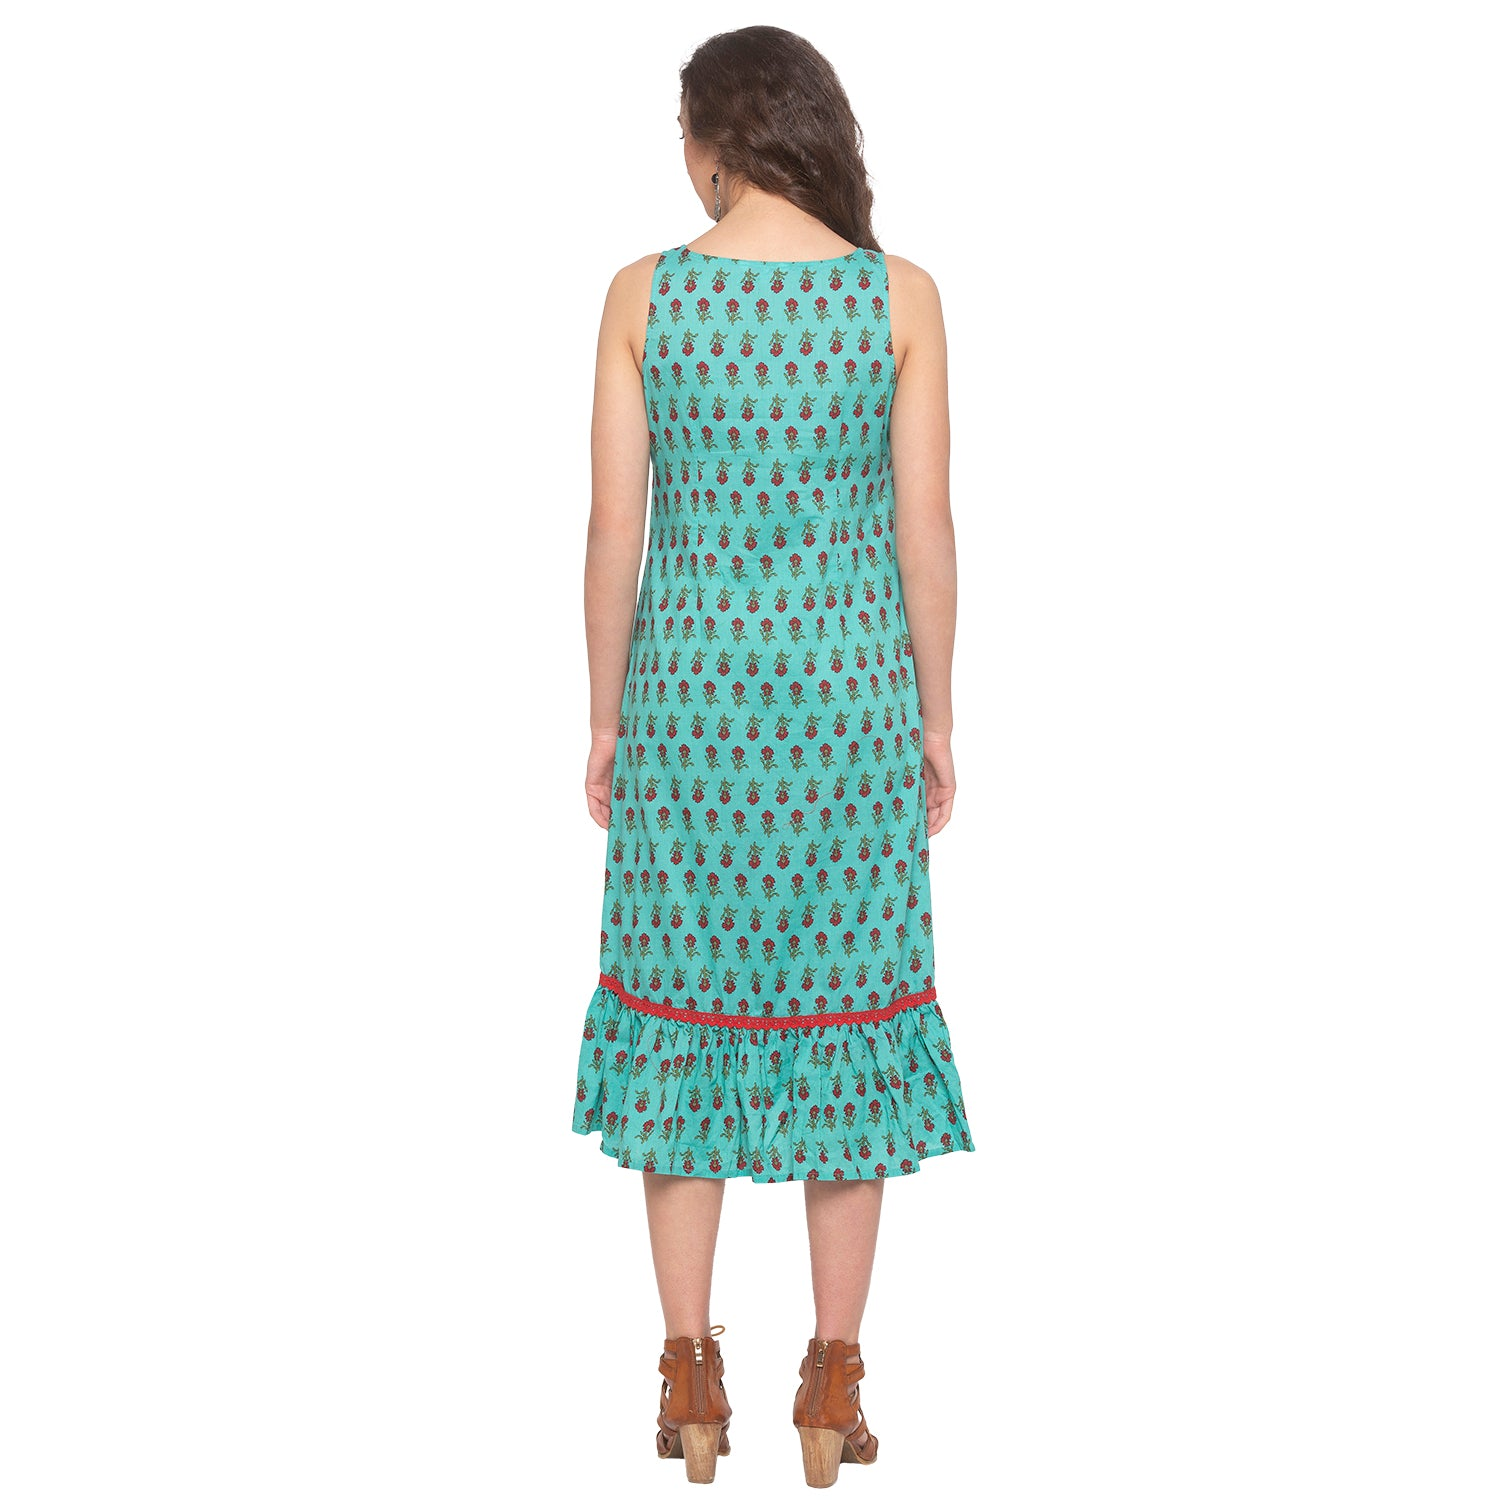 Teal Printed Dress-3